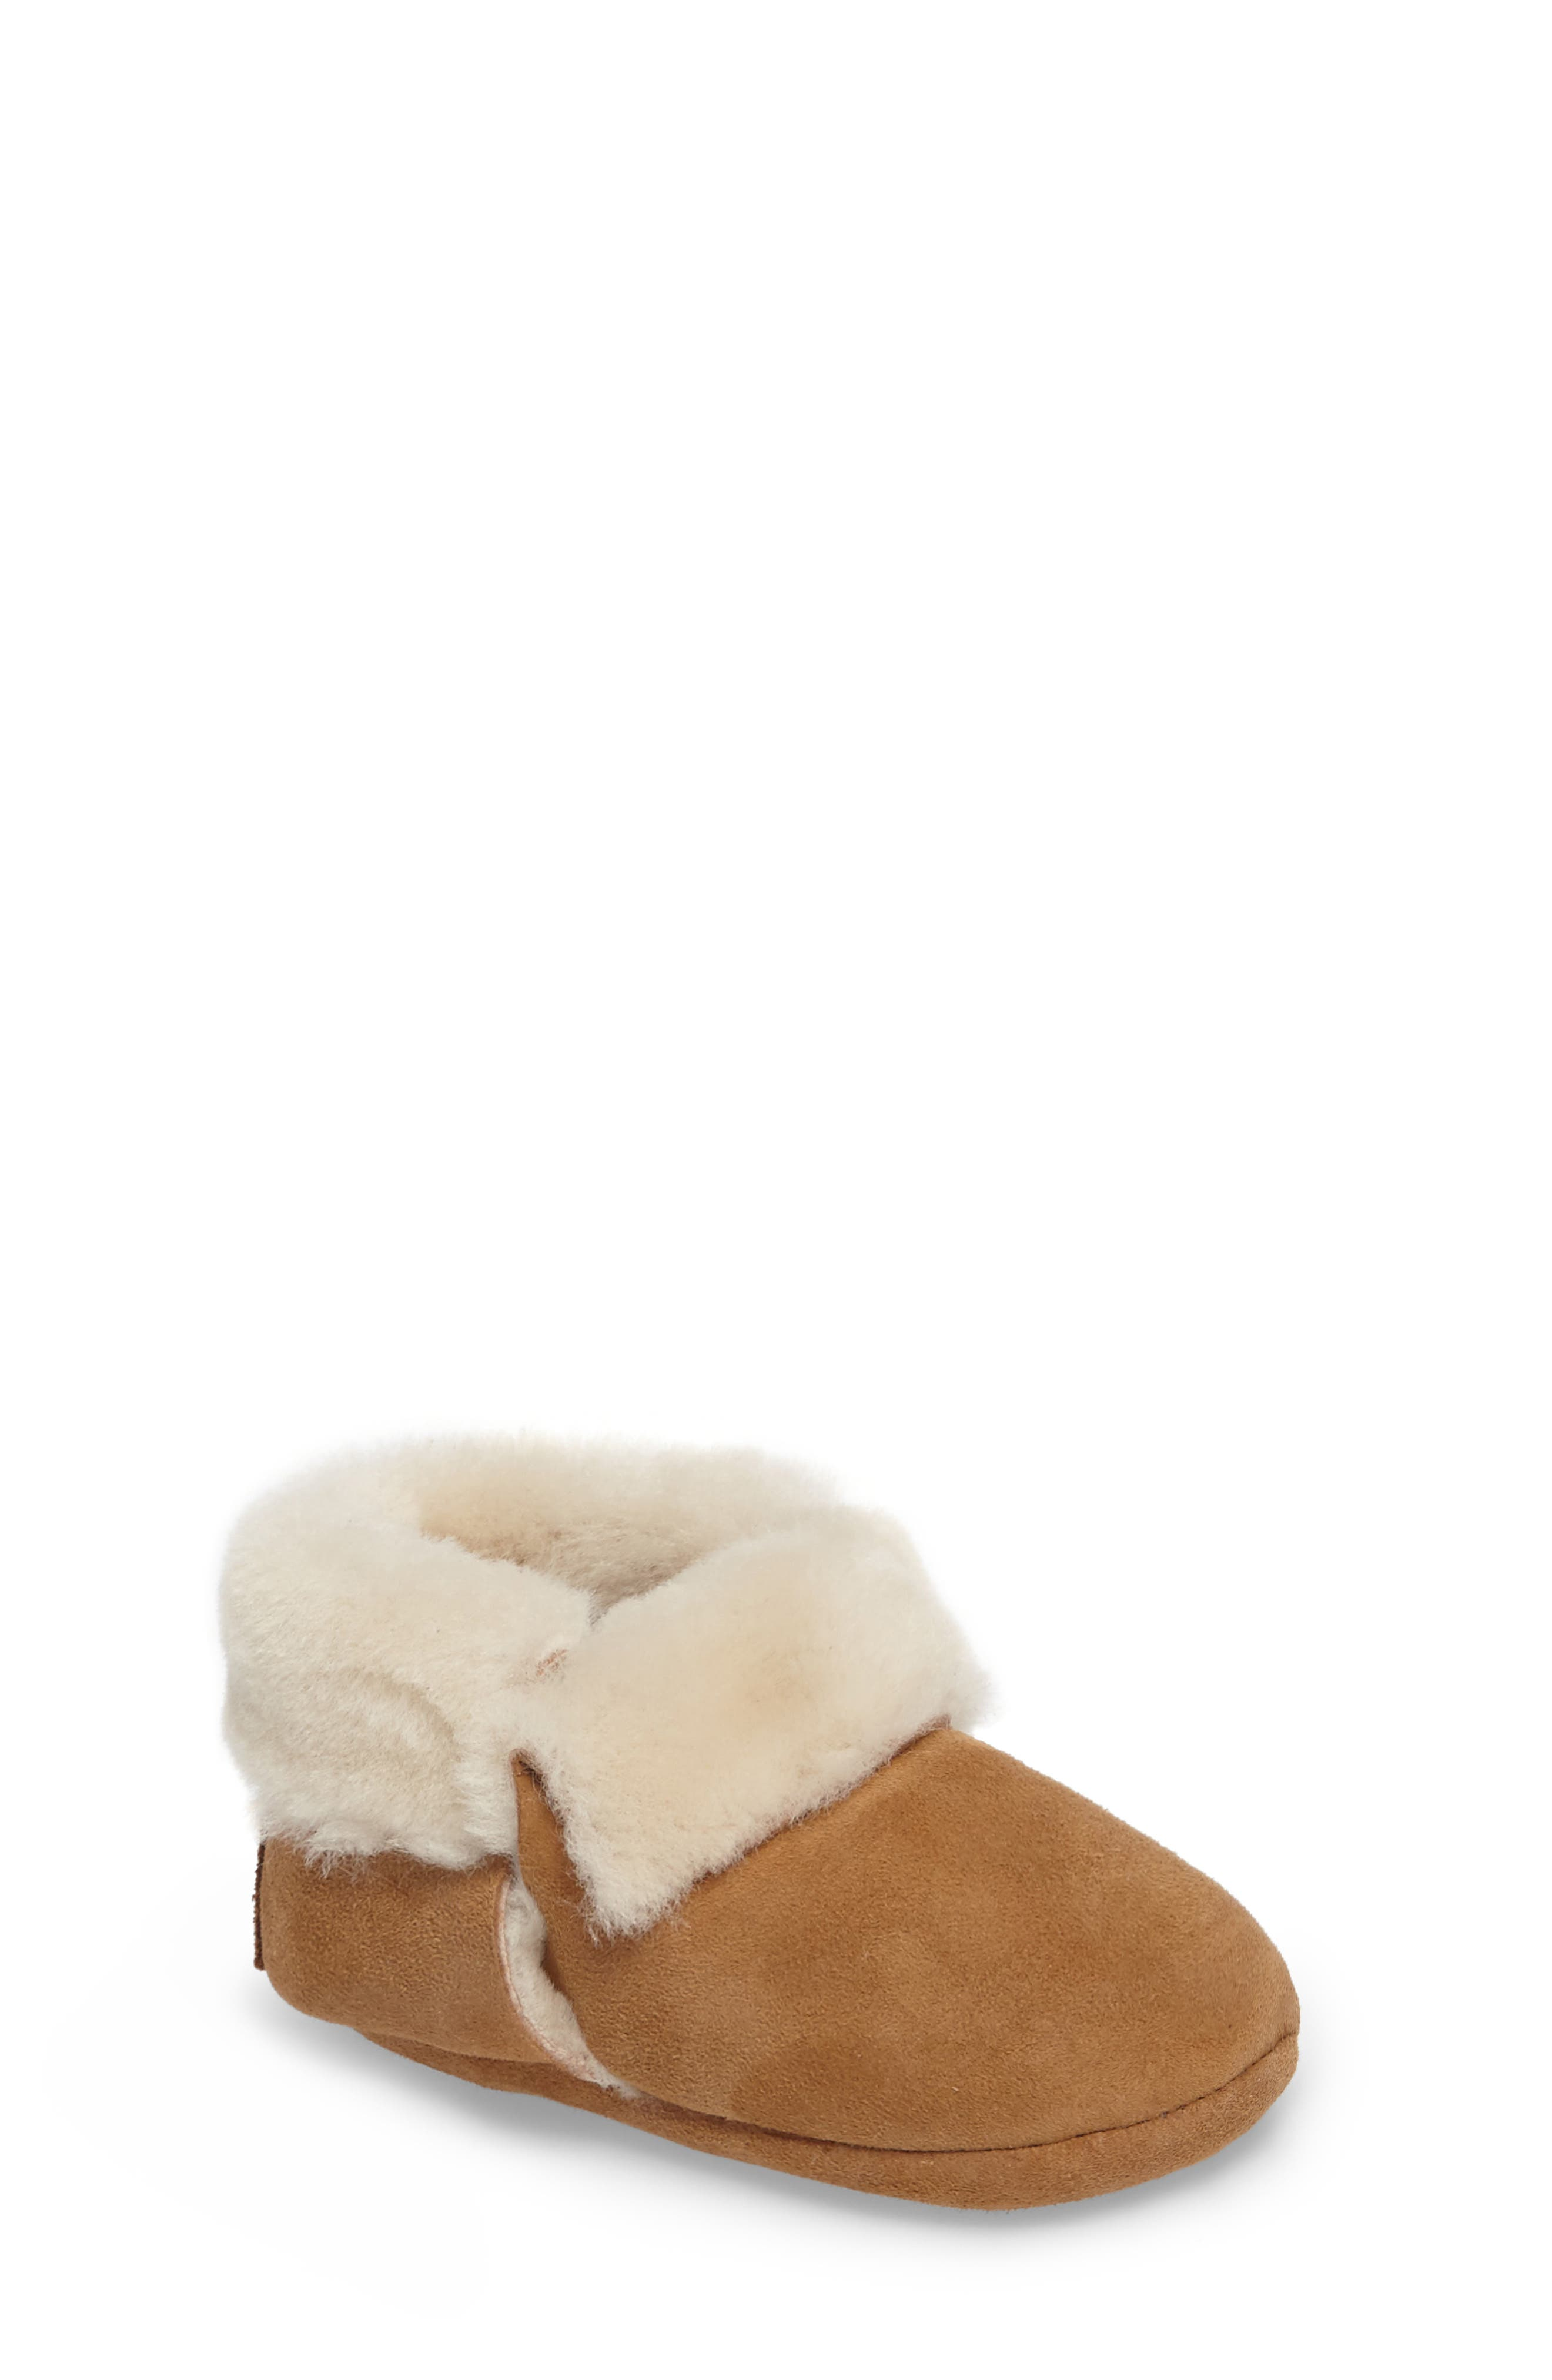 UGG<SUP>®</SUP>, Solvi Genuine Shearling Low Cuffed Bootie, Main thumbnail 1, color, CHESTNUT